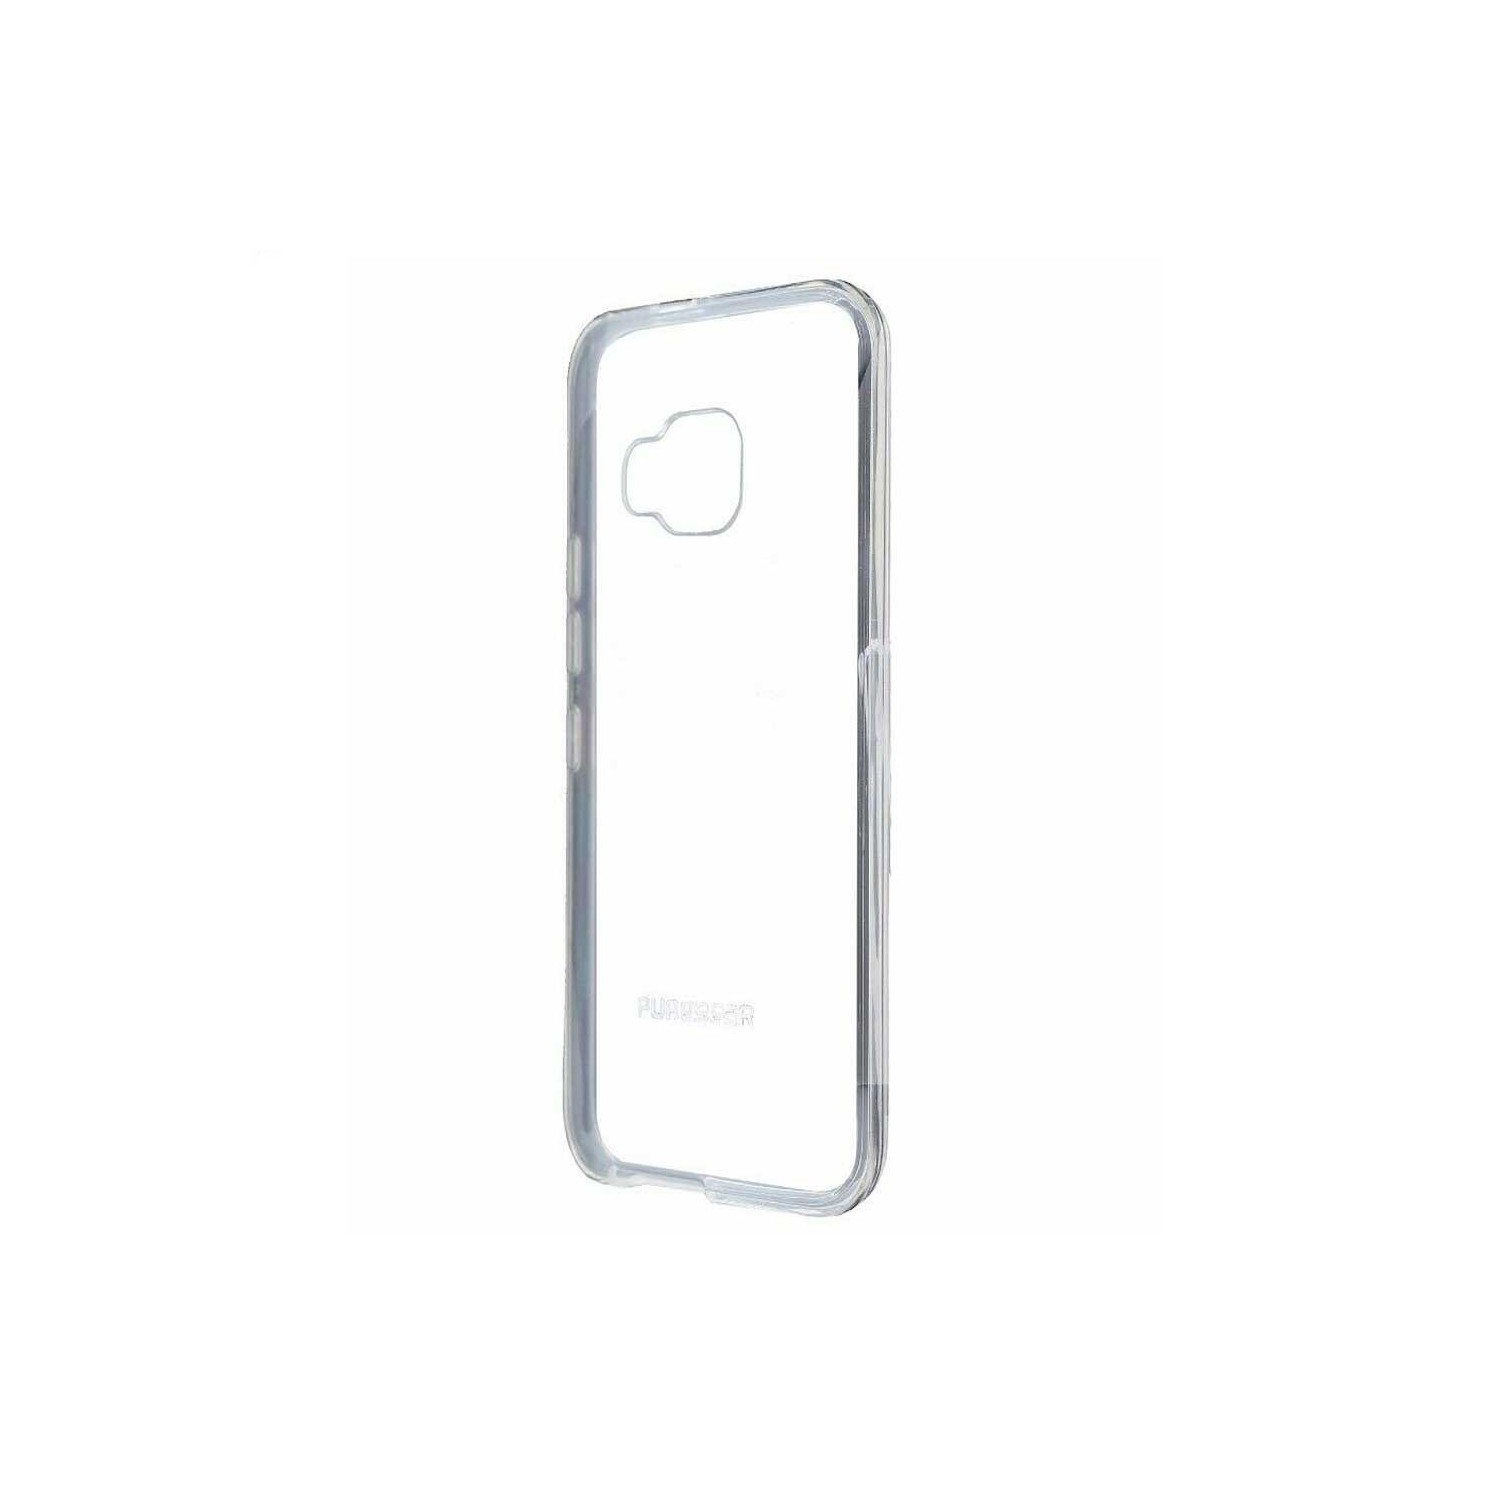 Case - Slimshell Puregear for HTC One M9  - Clear